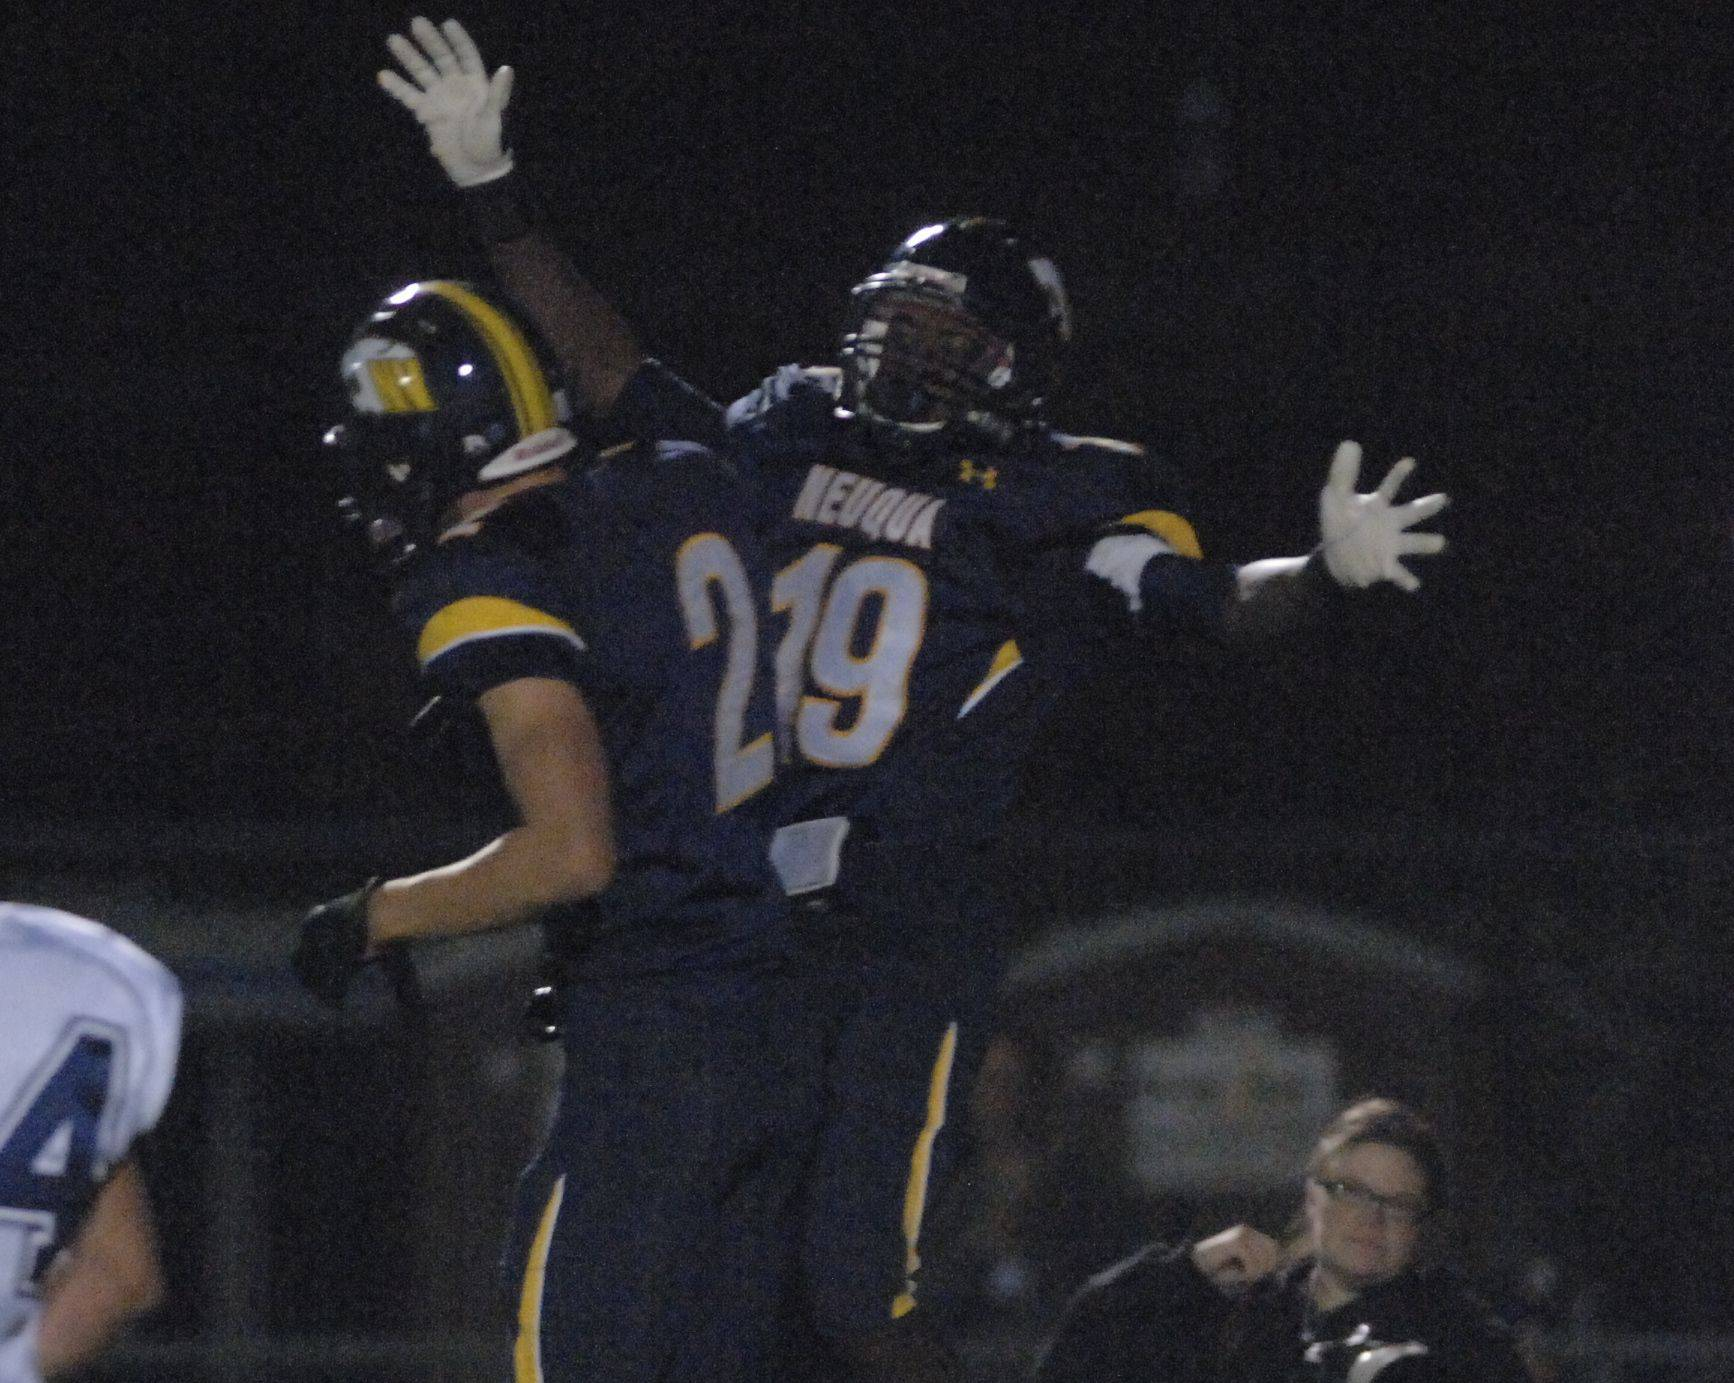 Week Nine - Images from the Lake Park vs. Neuqua Valley football game Friday, October 22, 2010.